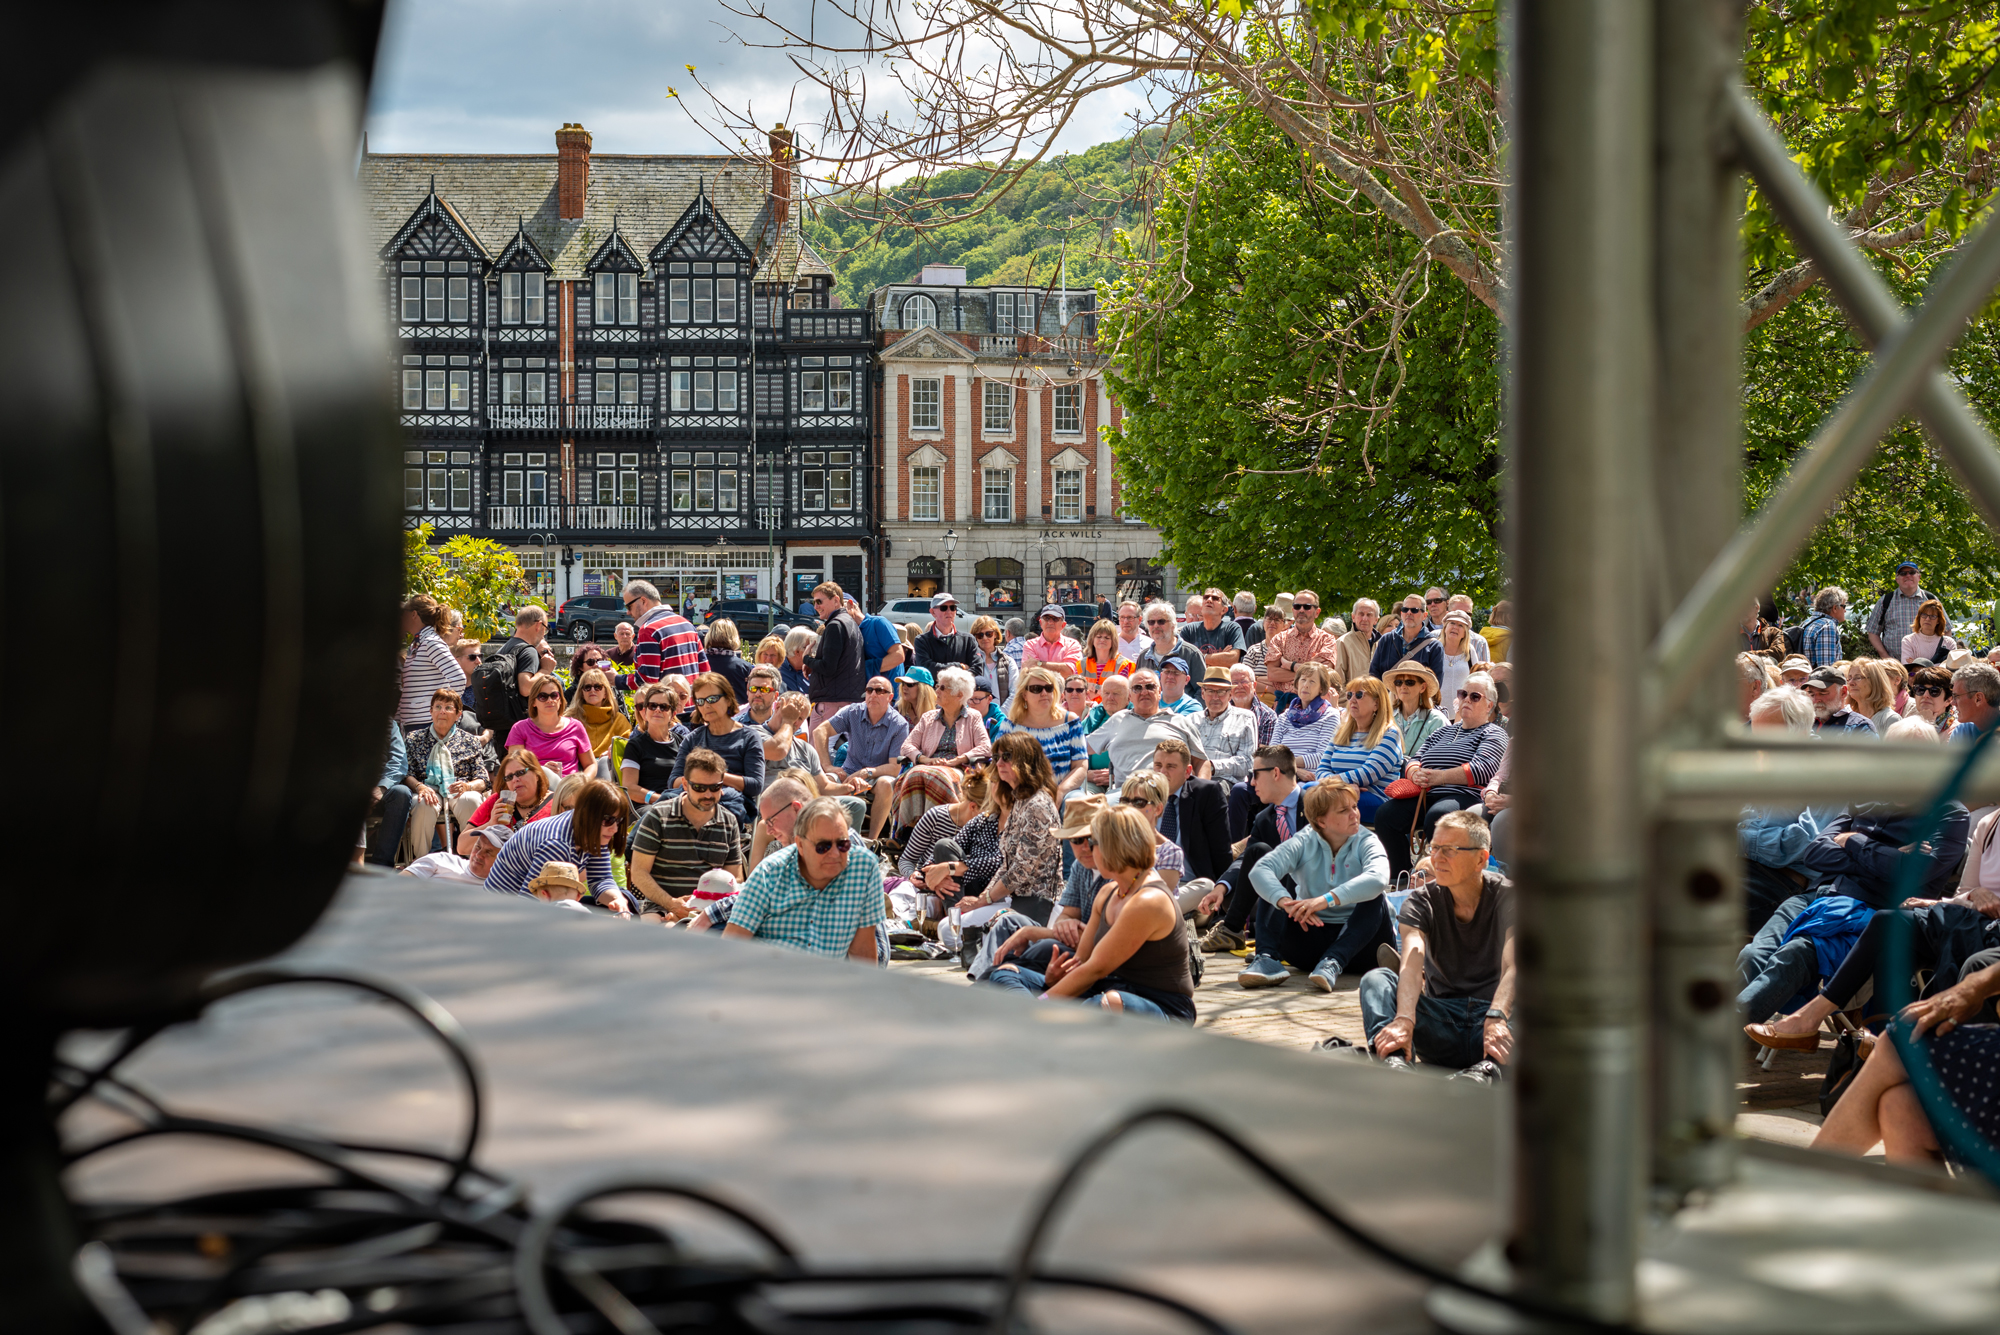 Crowd at Dartmouth music festival on sunny day 2019